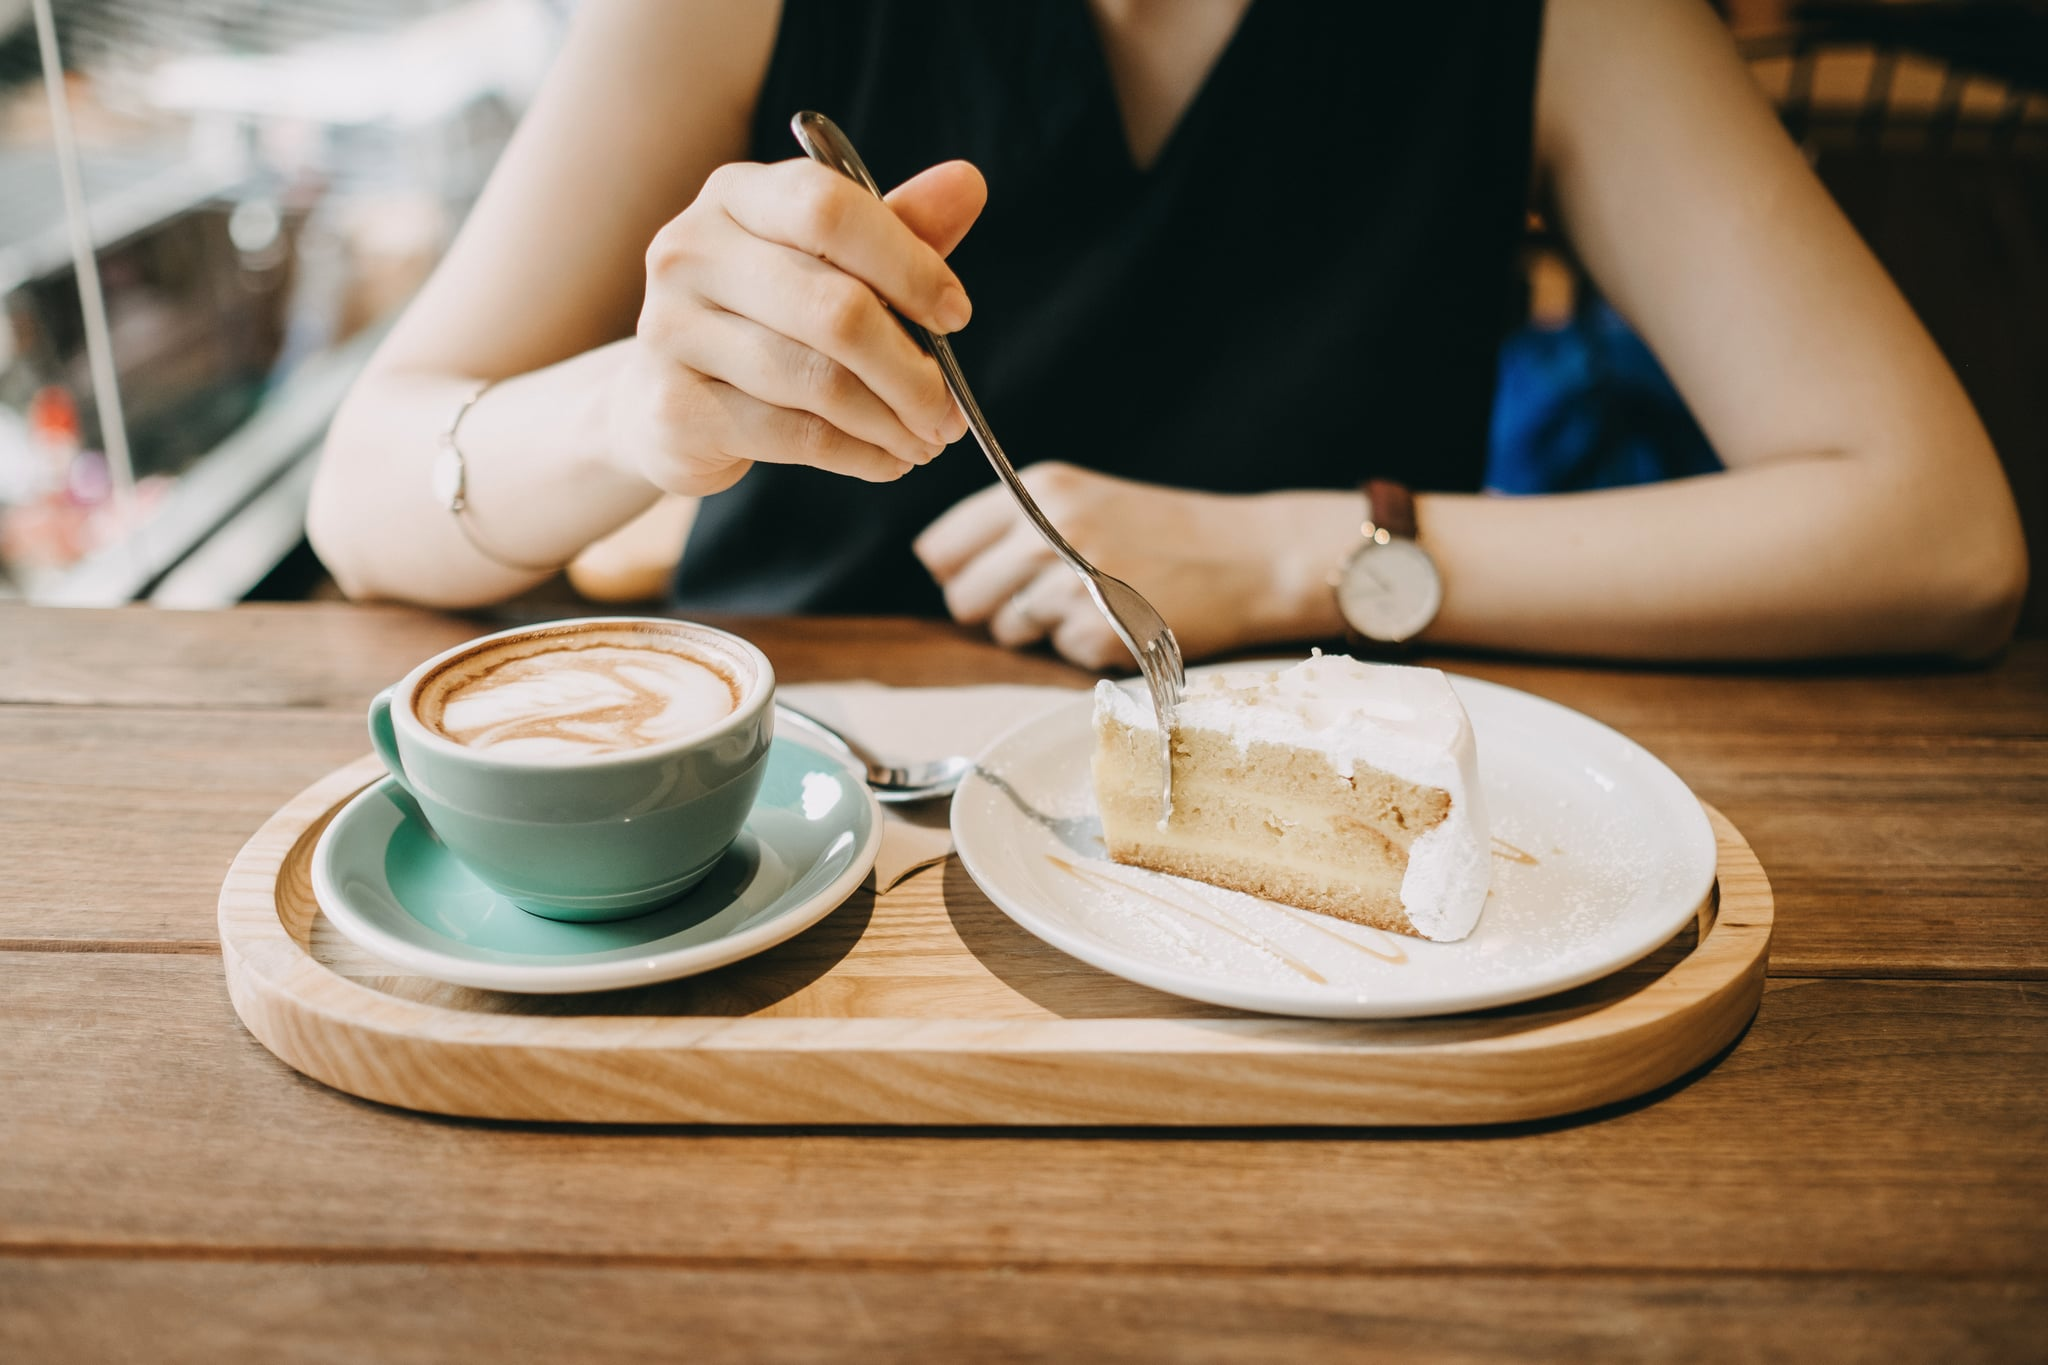 Woman having a relaxation time eating a slice of cake and having coffee in cafe